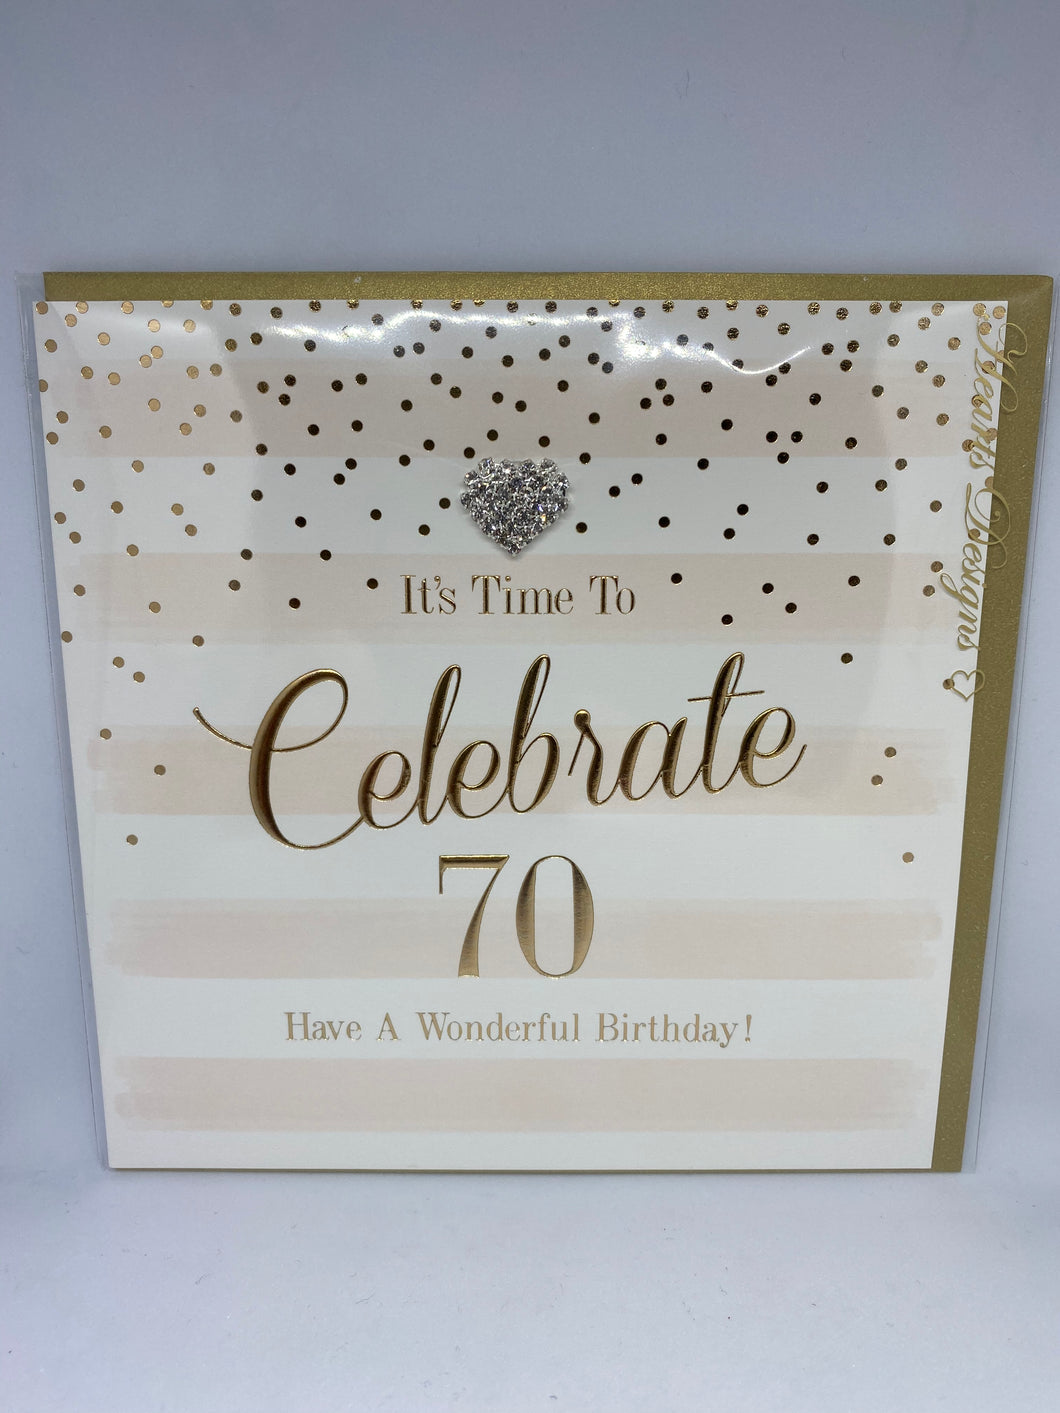 It's Time to Celebrate 70